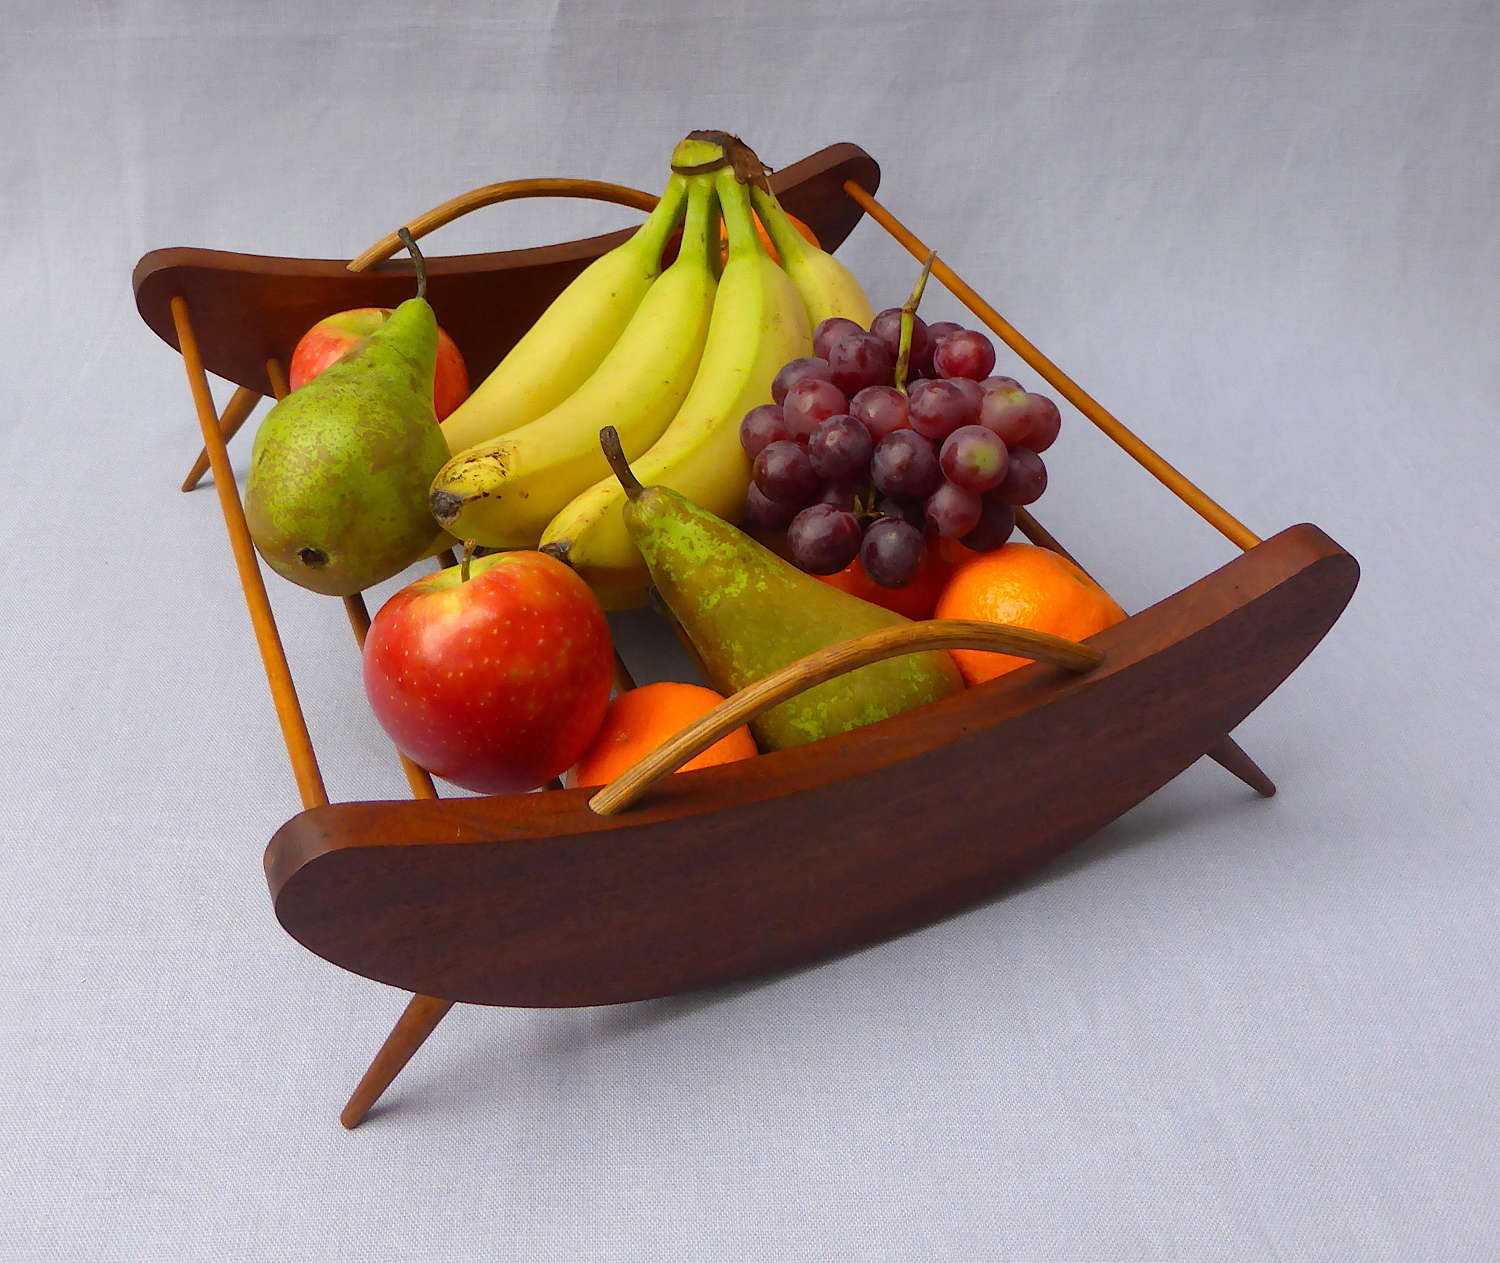 Mid 20th Century Danish Teak Fruit Basket